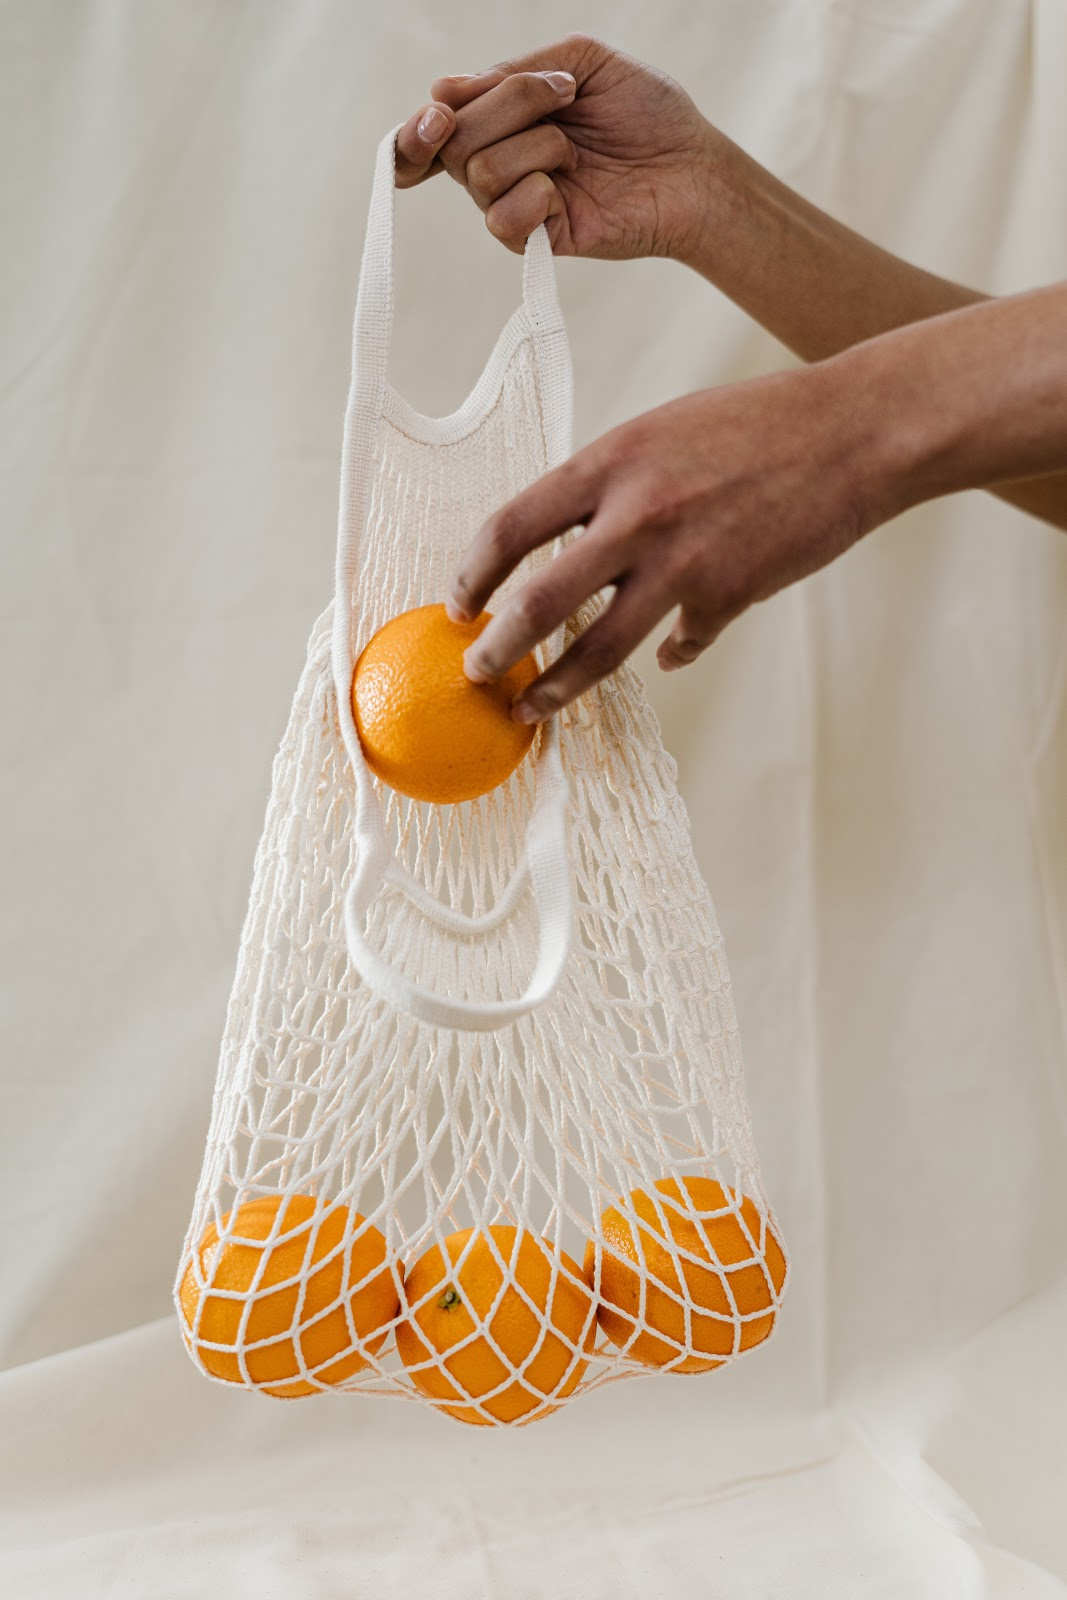 bag of oranges with white background